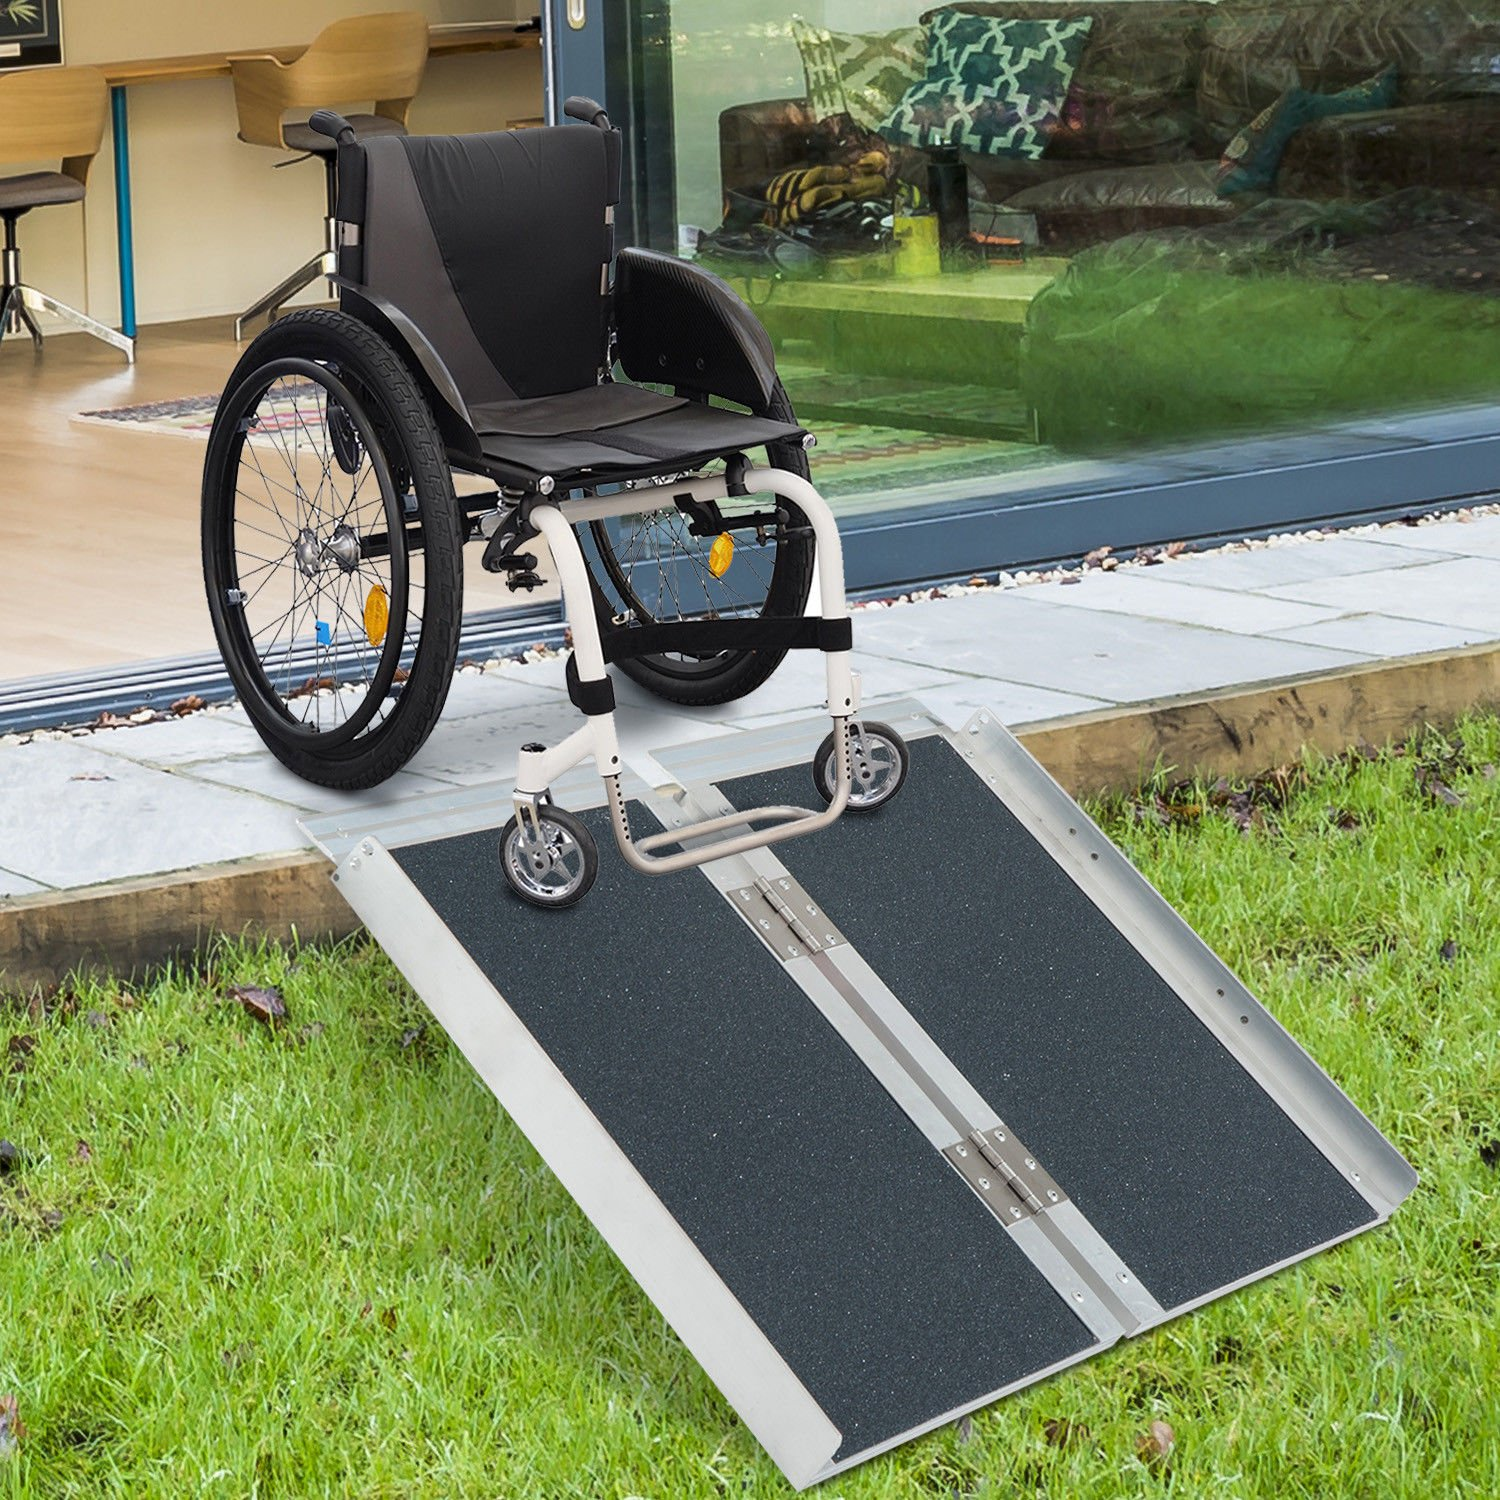 HOMCOM 2' Lightweight Aluminum Portable Skidproof PVC Carpeted Folding Wheelchair Ramp by HOMCOM (Image #3)